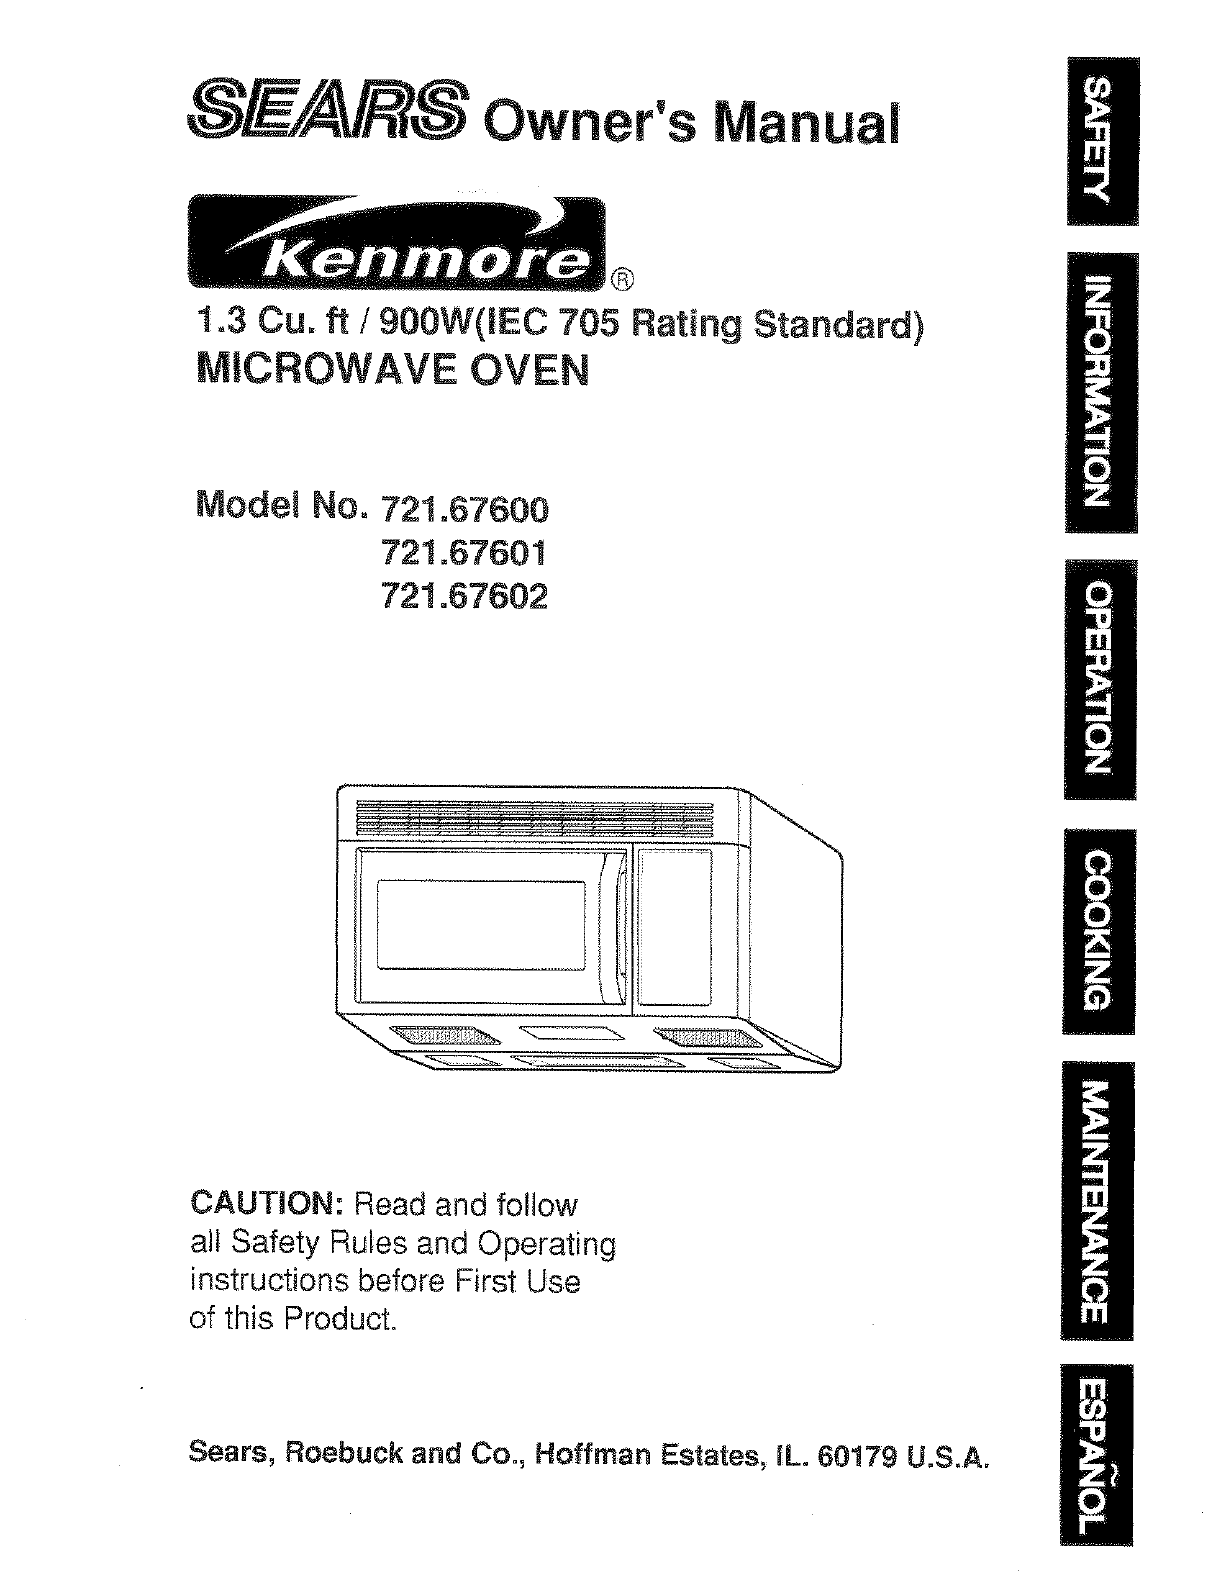 sears microwave oven 721 67601 user guide manualsonline com rh kitchen manualsonline com kenmore microwave owner's manual Kenmore Microwave Over the Range